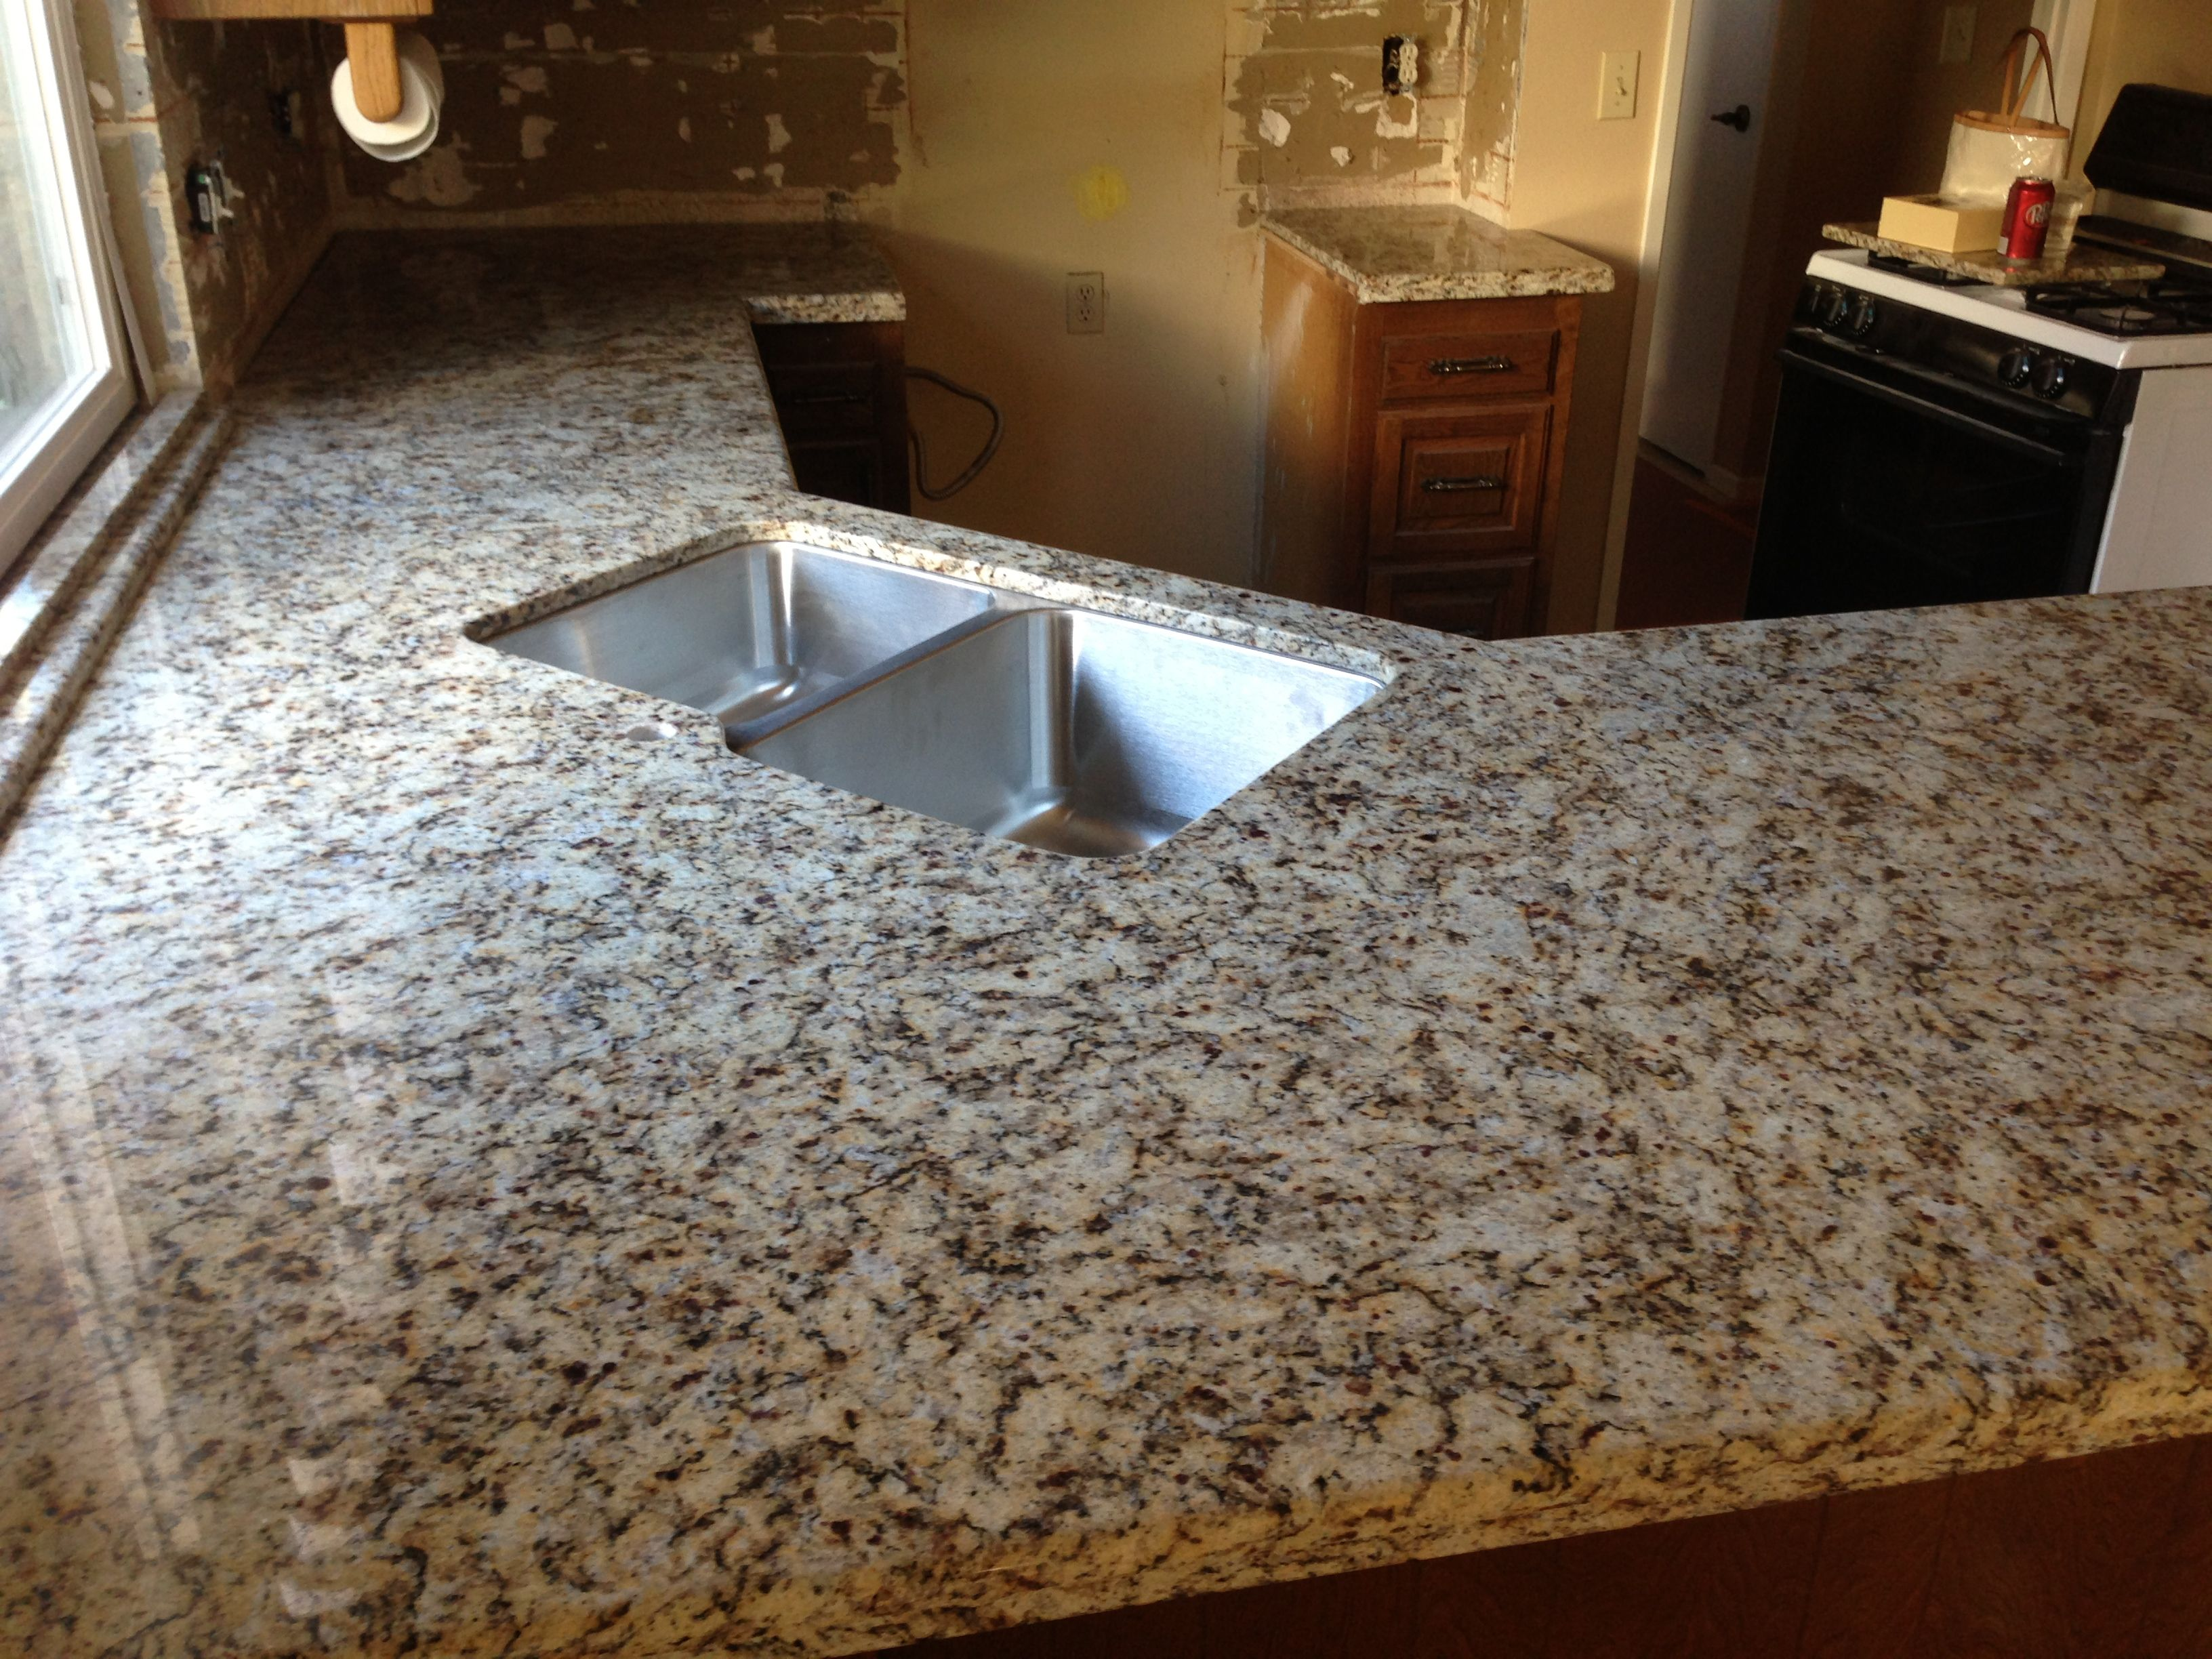 New Granite Countertop Installed. Giallo Napoli. Tumbled Travertine To Be  Installed On Backsplash